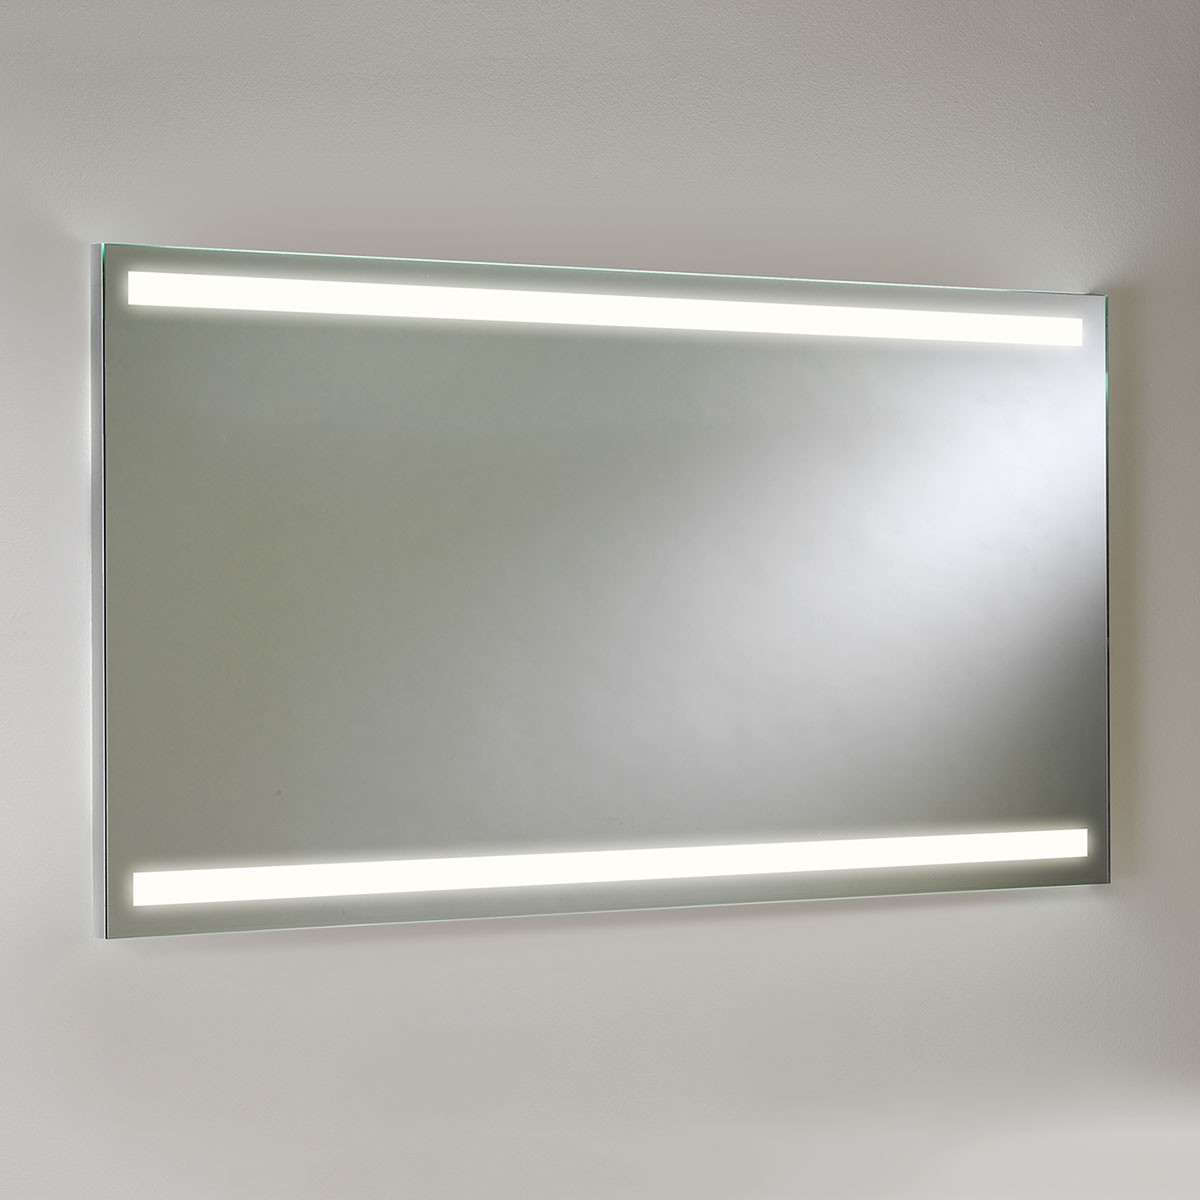 astro avlon 900 led bathroom mirror light at uk electrical supplies. Black Bedroom Furniture Sets. Home Design Ideas